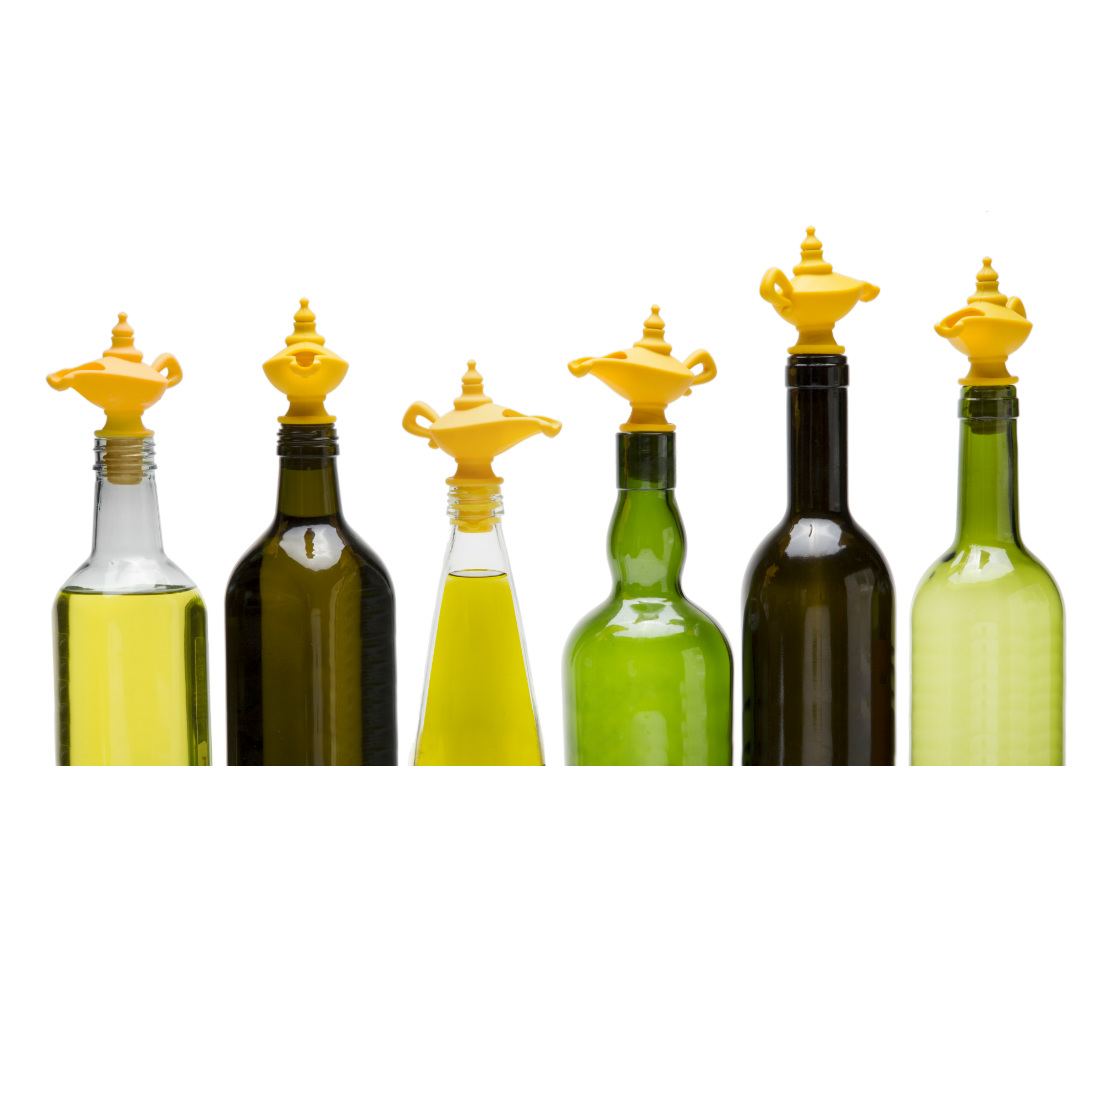 Oiladdin Pourer And Stopper Homeware Furniture And